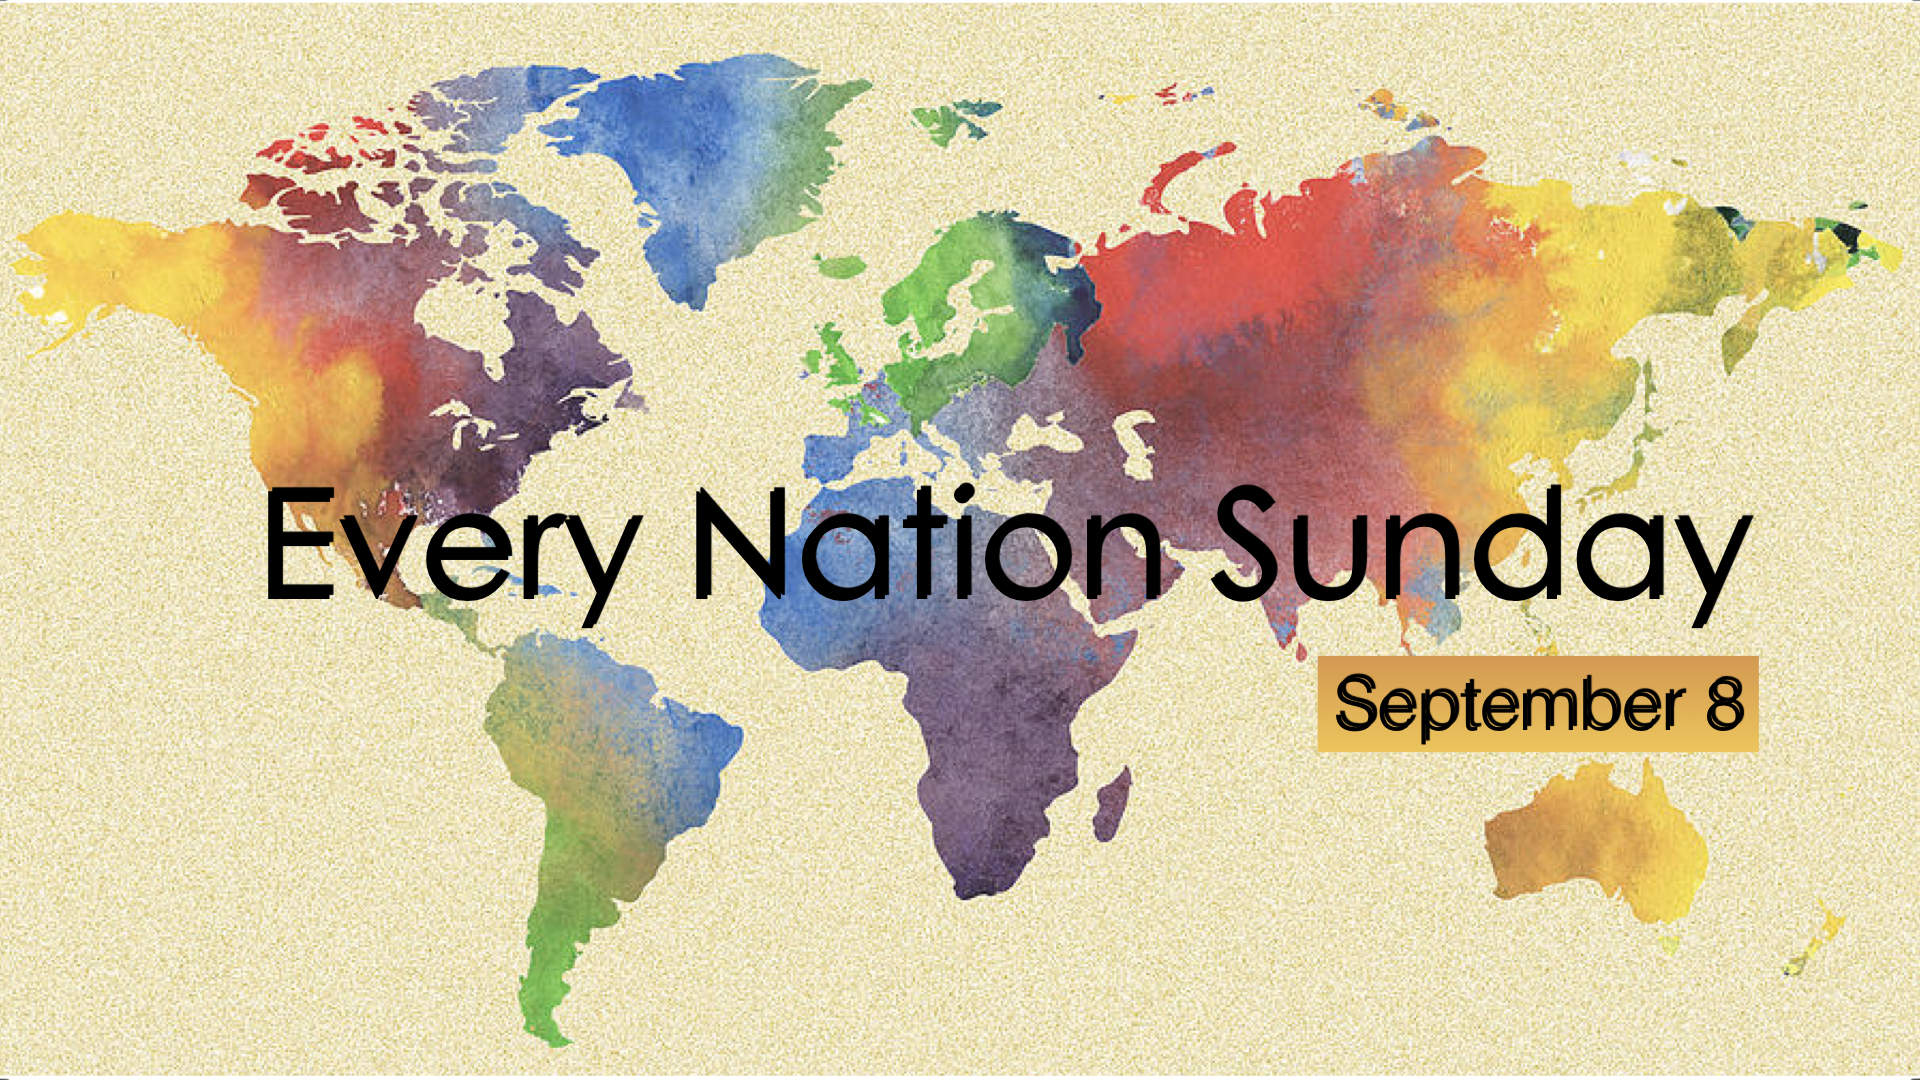 Every Nation Sunday.001.jpeg